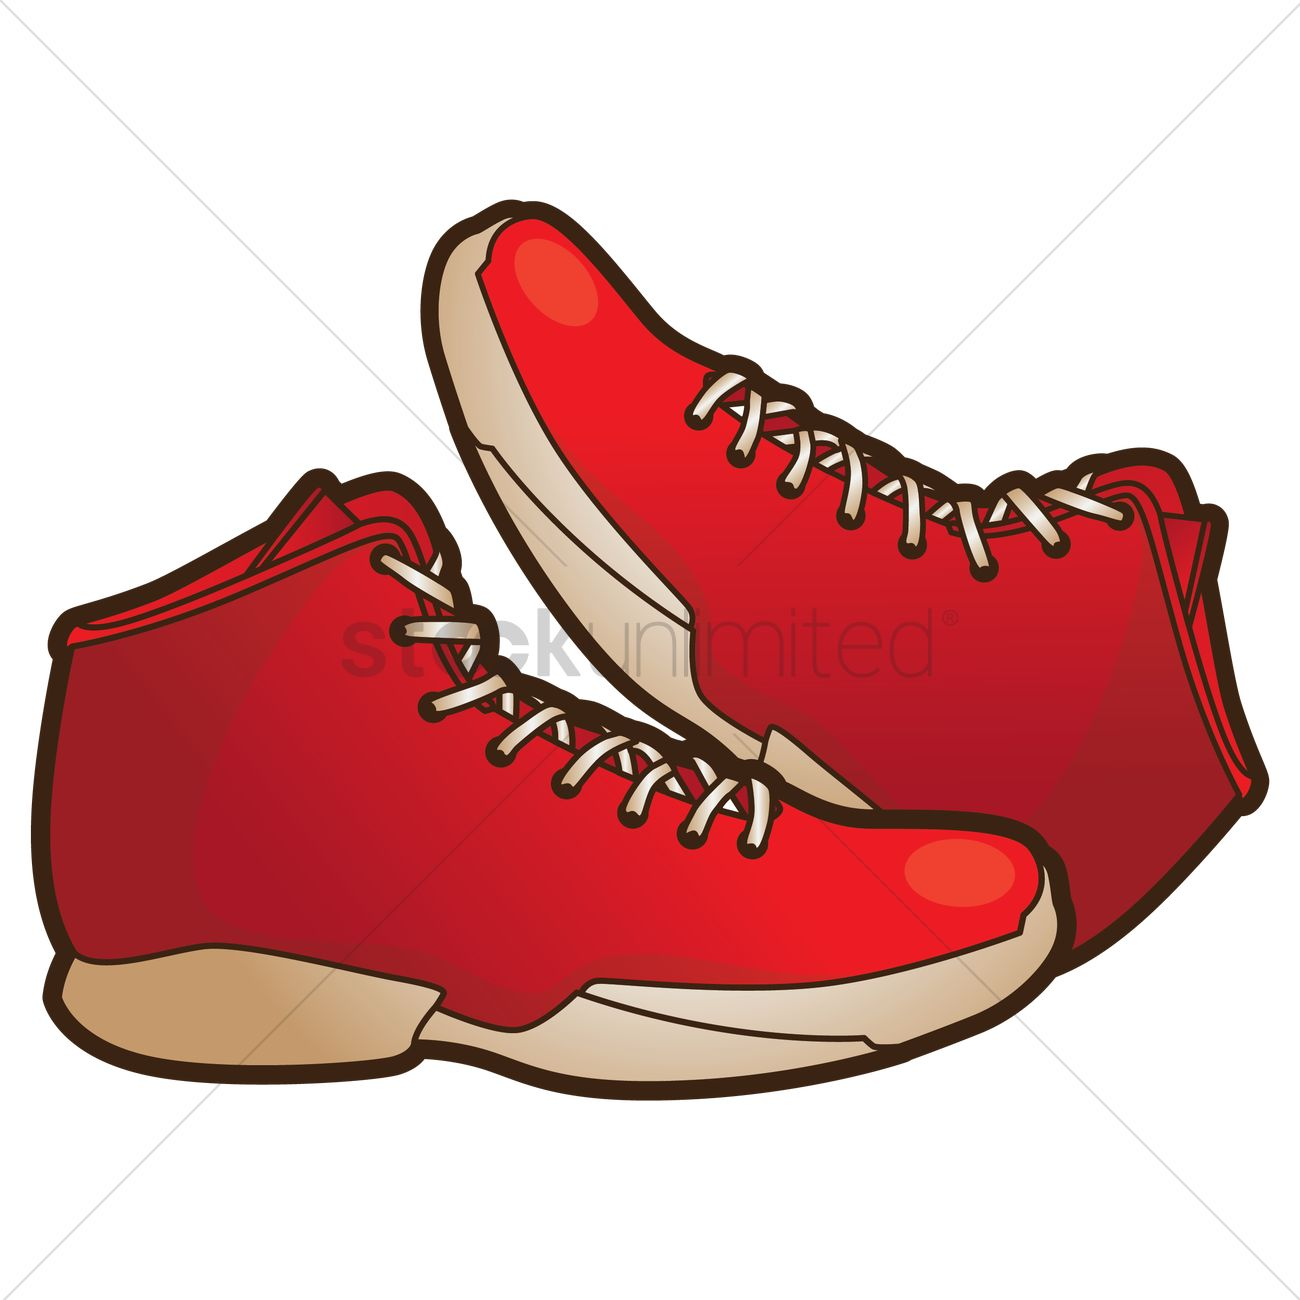 Basketball shoes clipart 3 » Clipart Station.